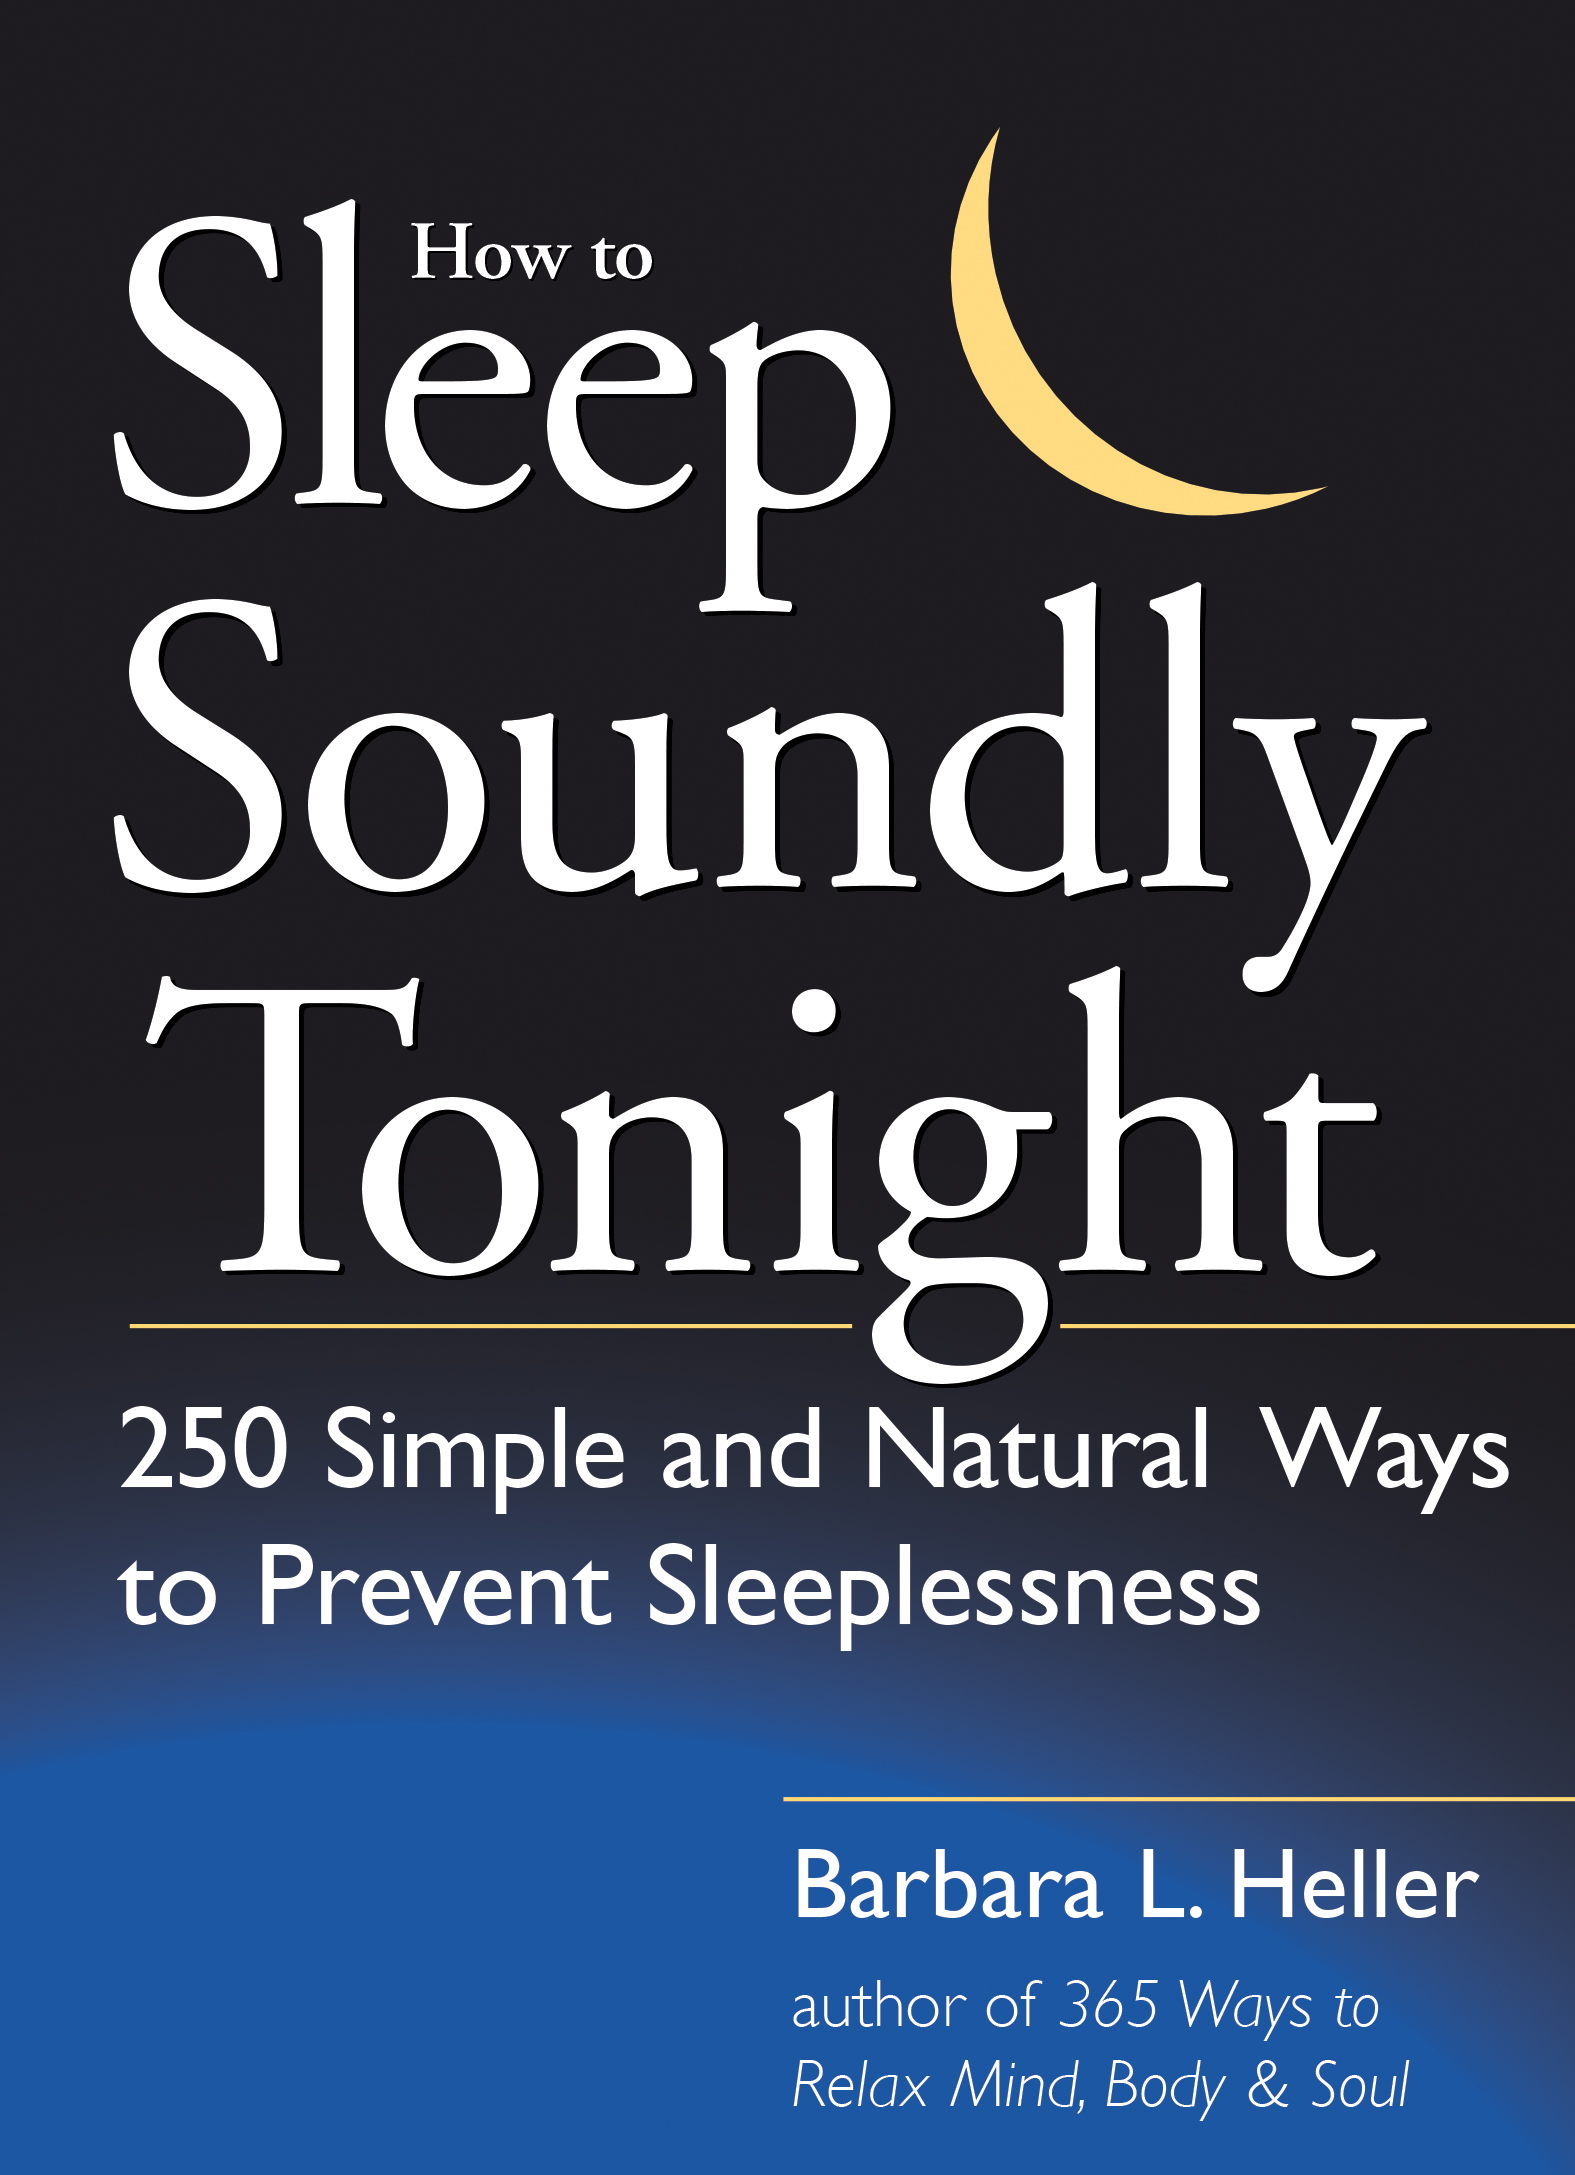 How to Sleep Soundly Tonight 250 Simple and Natural Ways to Prevent Sleeplessness - Barbara L. Heller